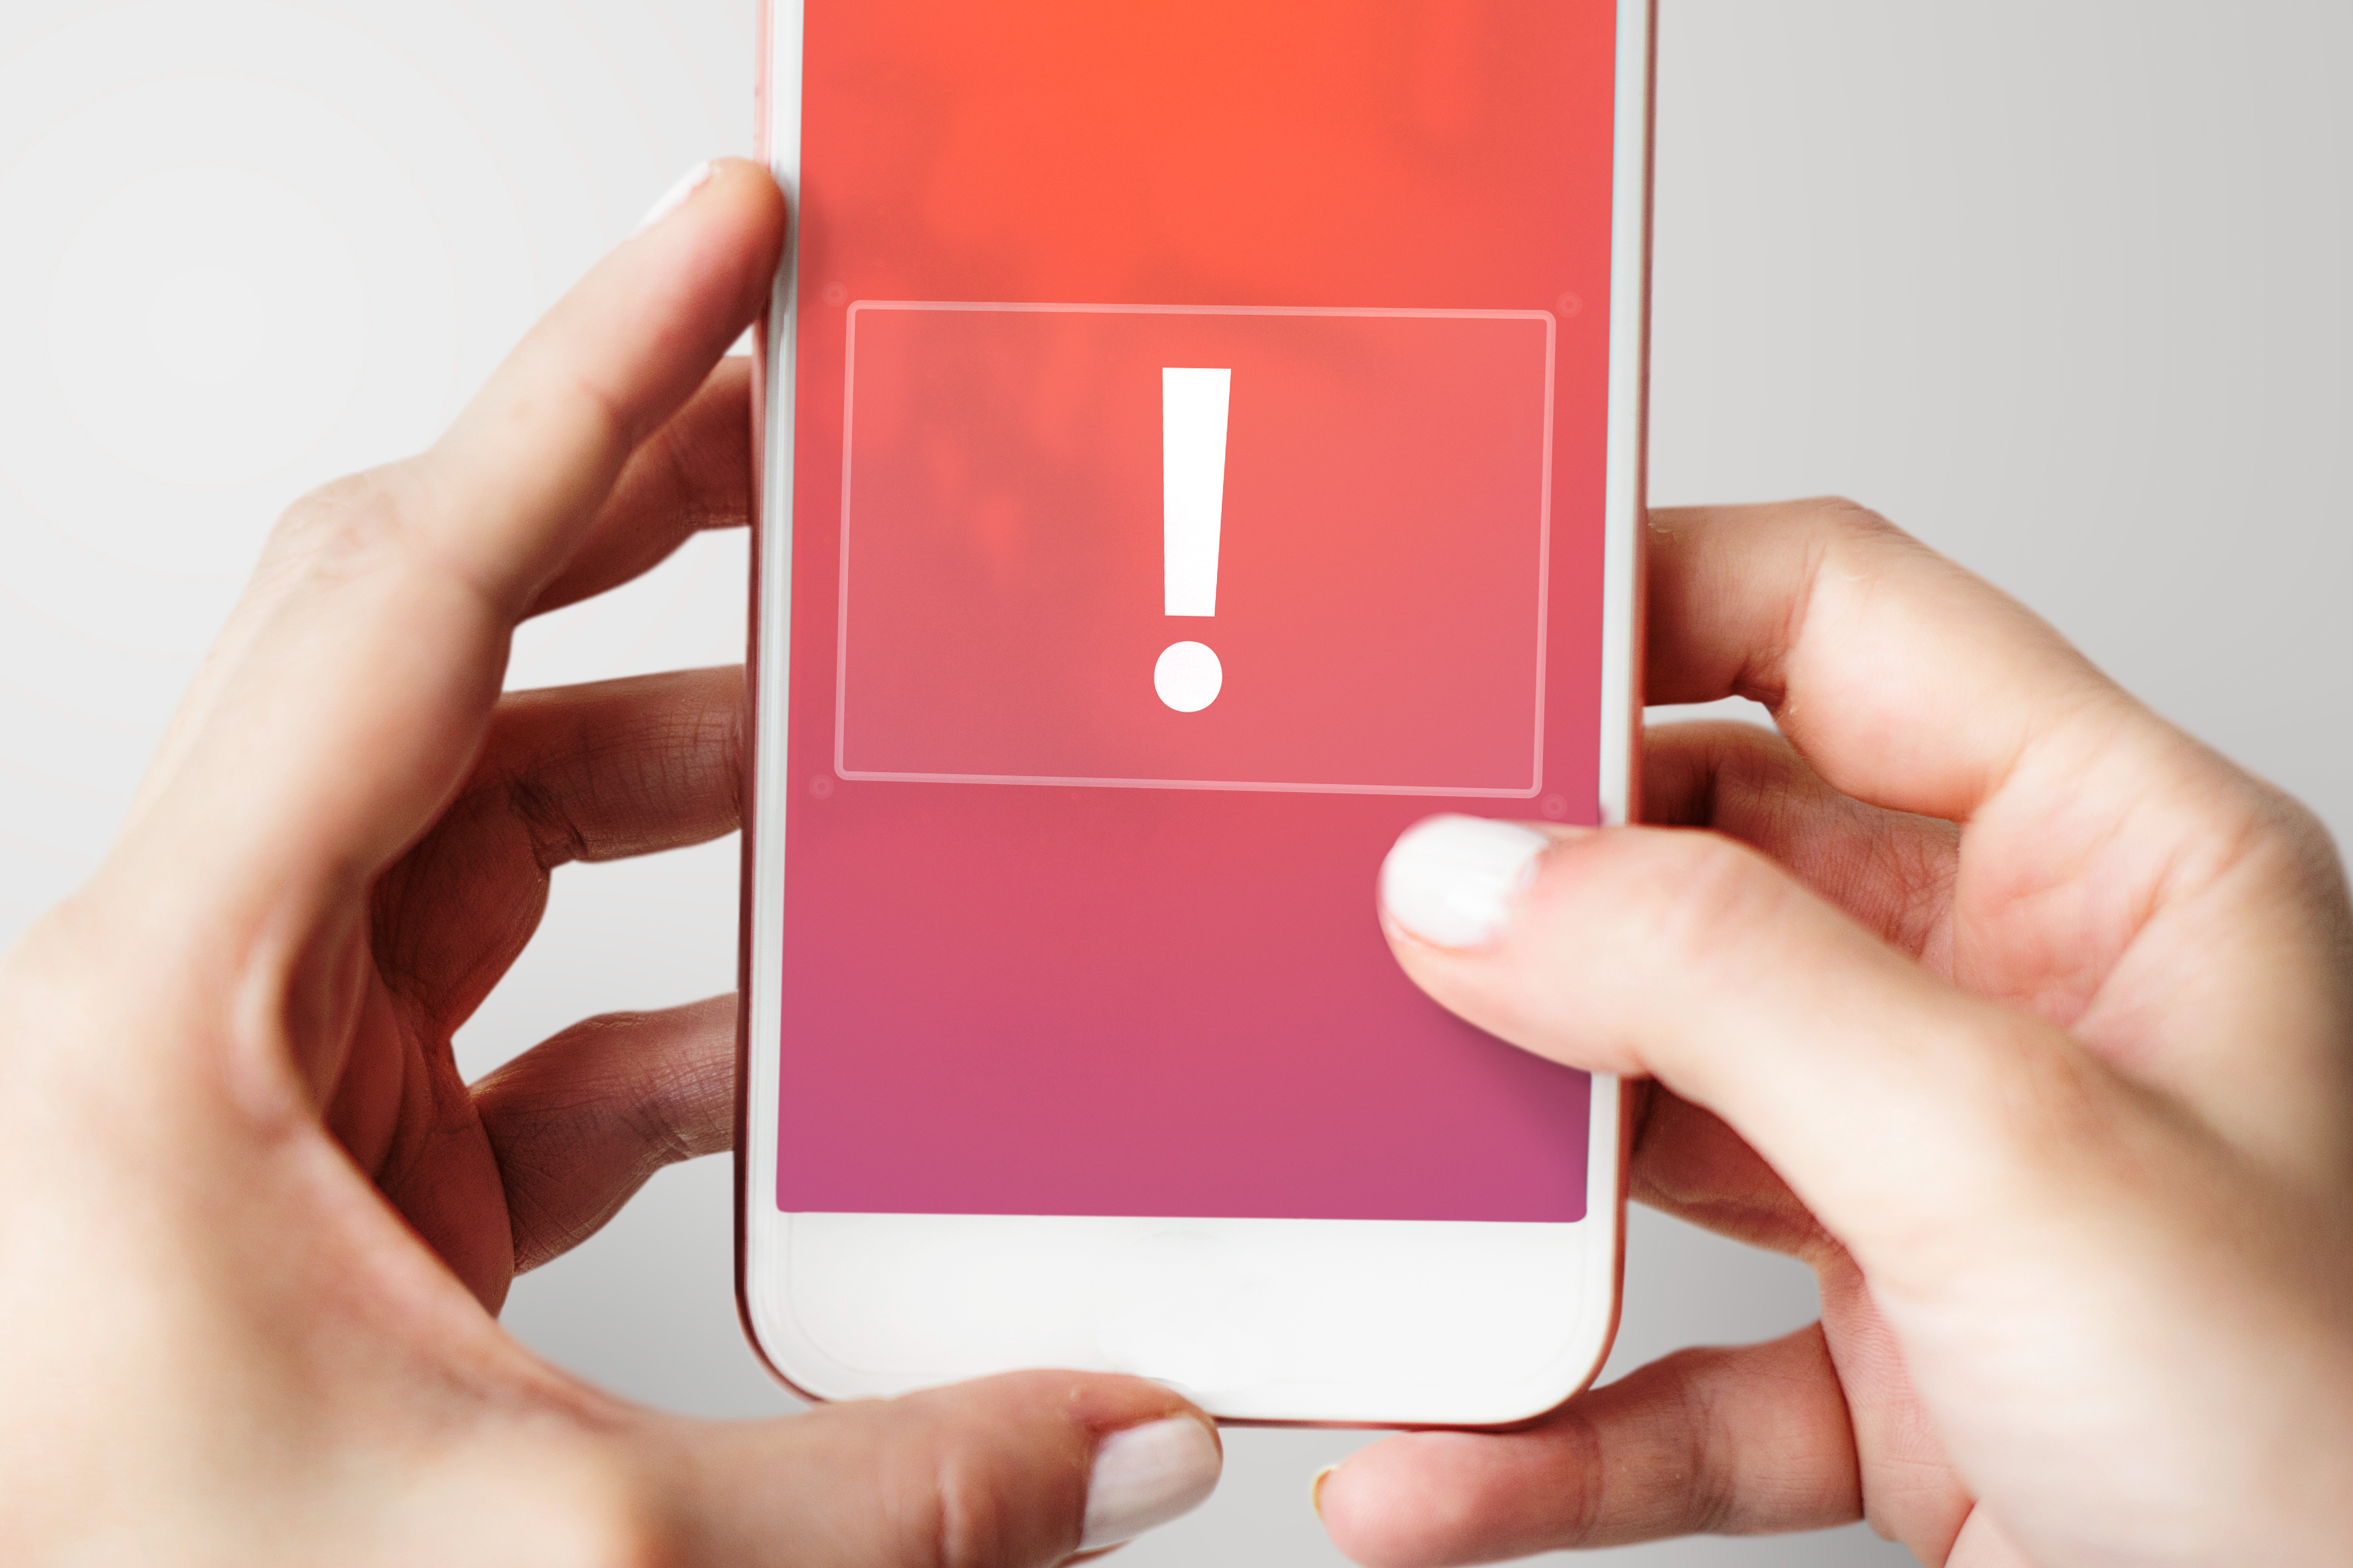 Hands holding a cell phone with an exclamation point on the screen for a message